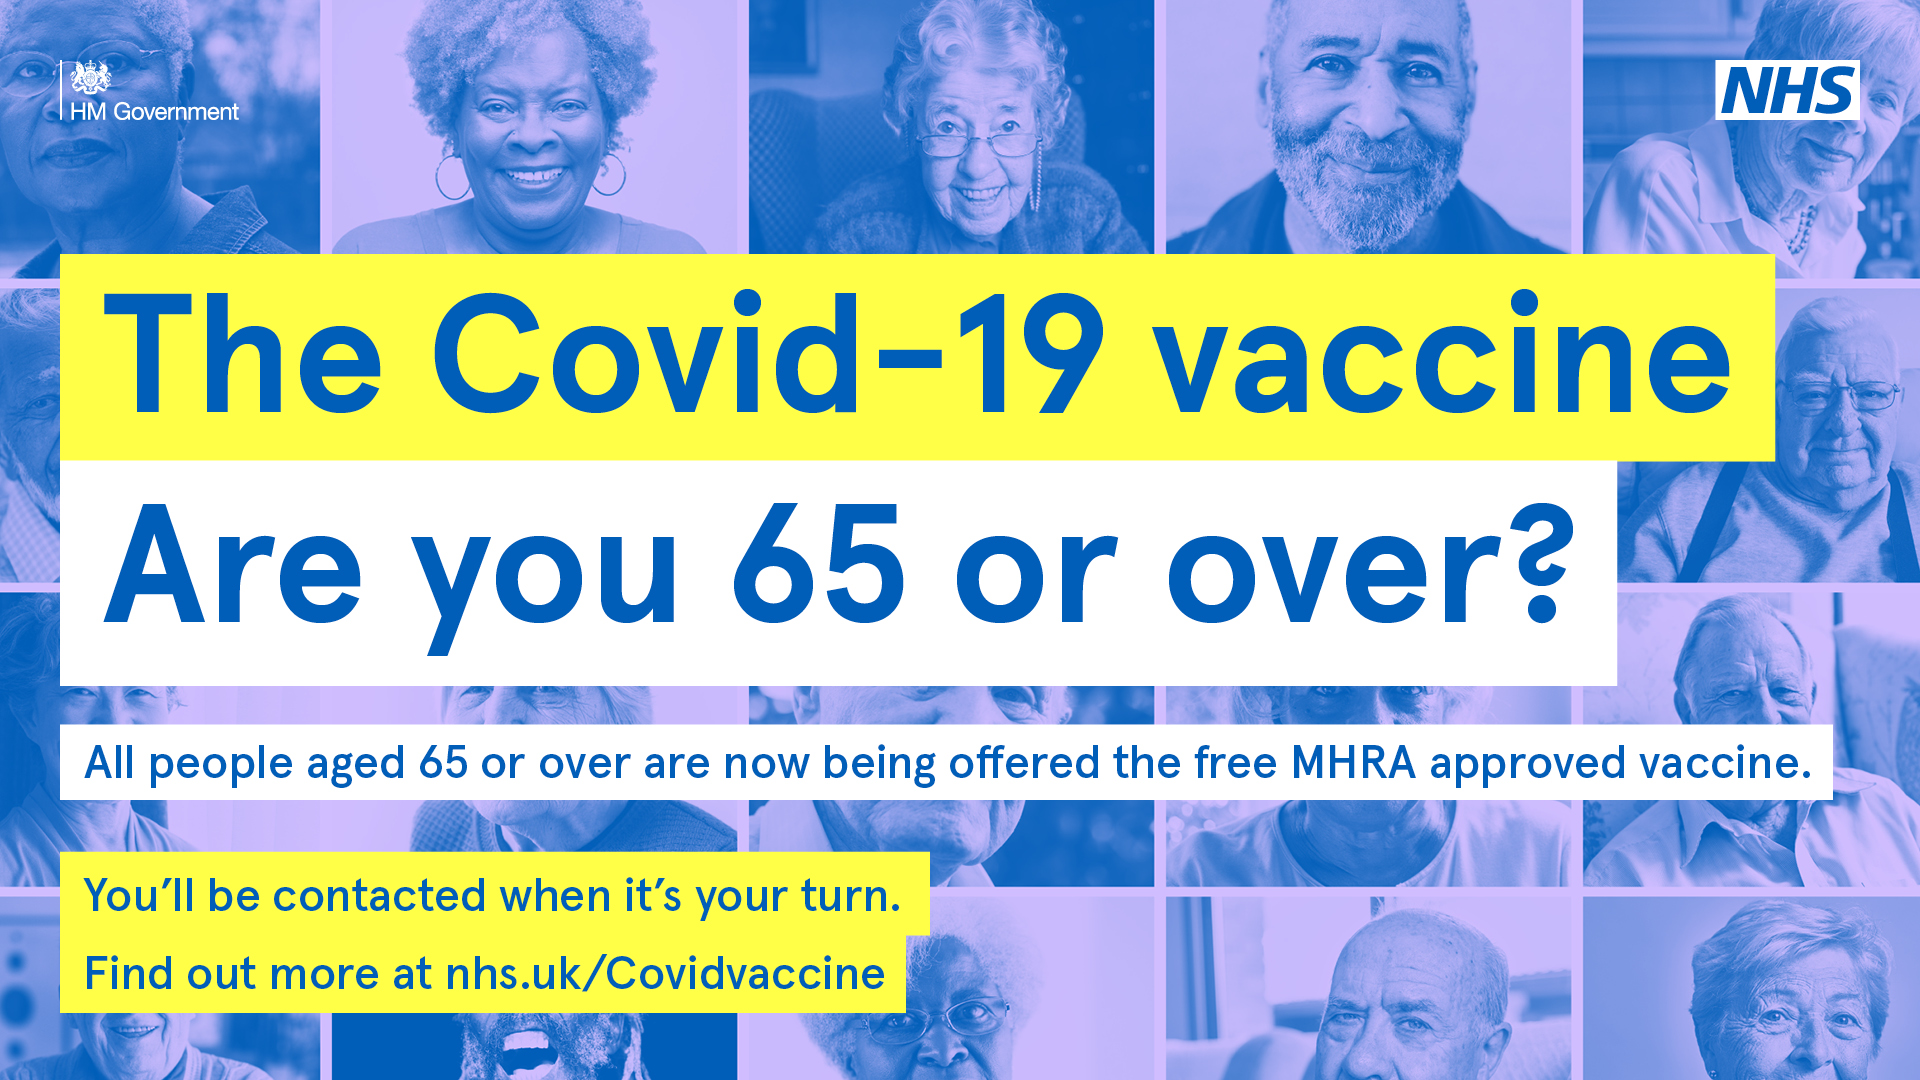 NHS in Northamptonshire urges people aged 65 to 69 to book their COVID-19 vaccine this week